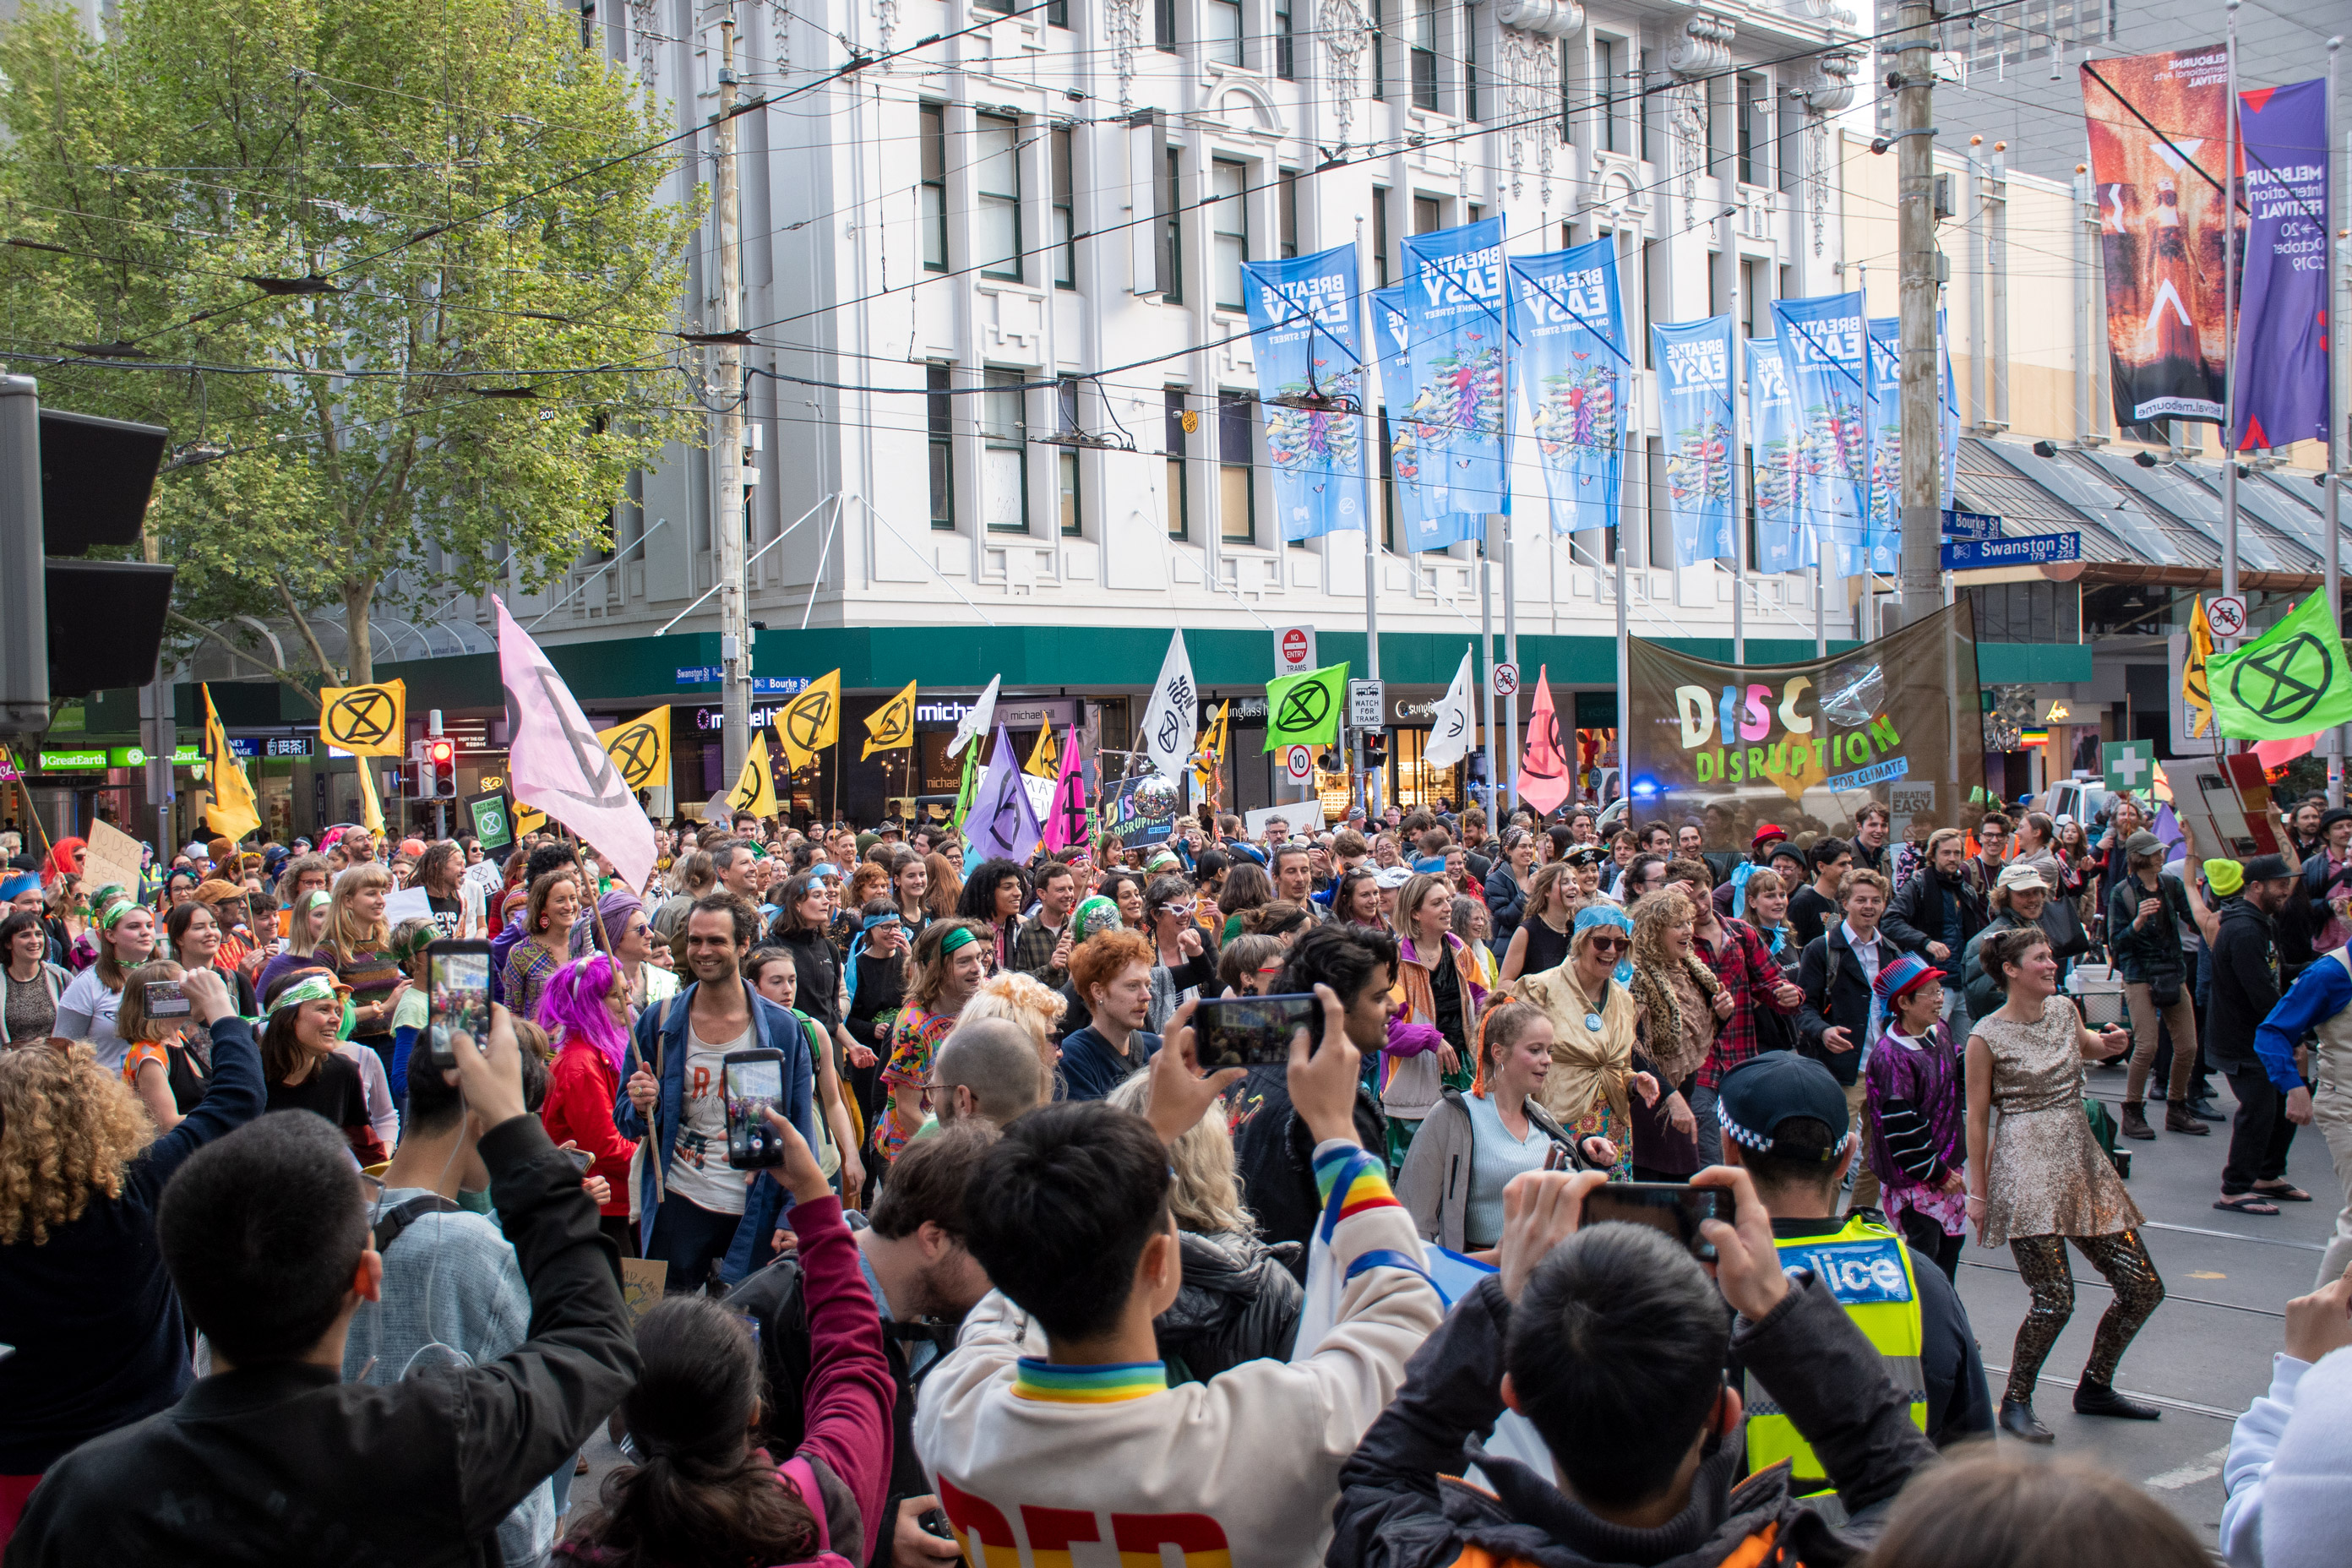 The protesters blocked several CBD intersections including Swanston and Bourke streets, causing frustration among peak-hour commuters.